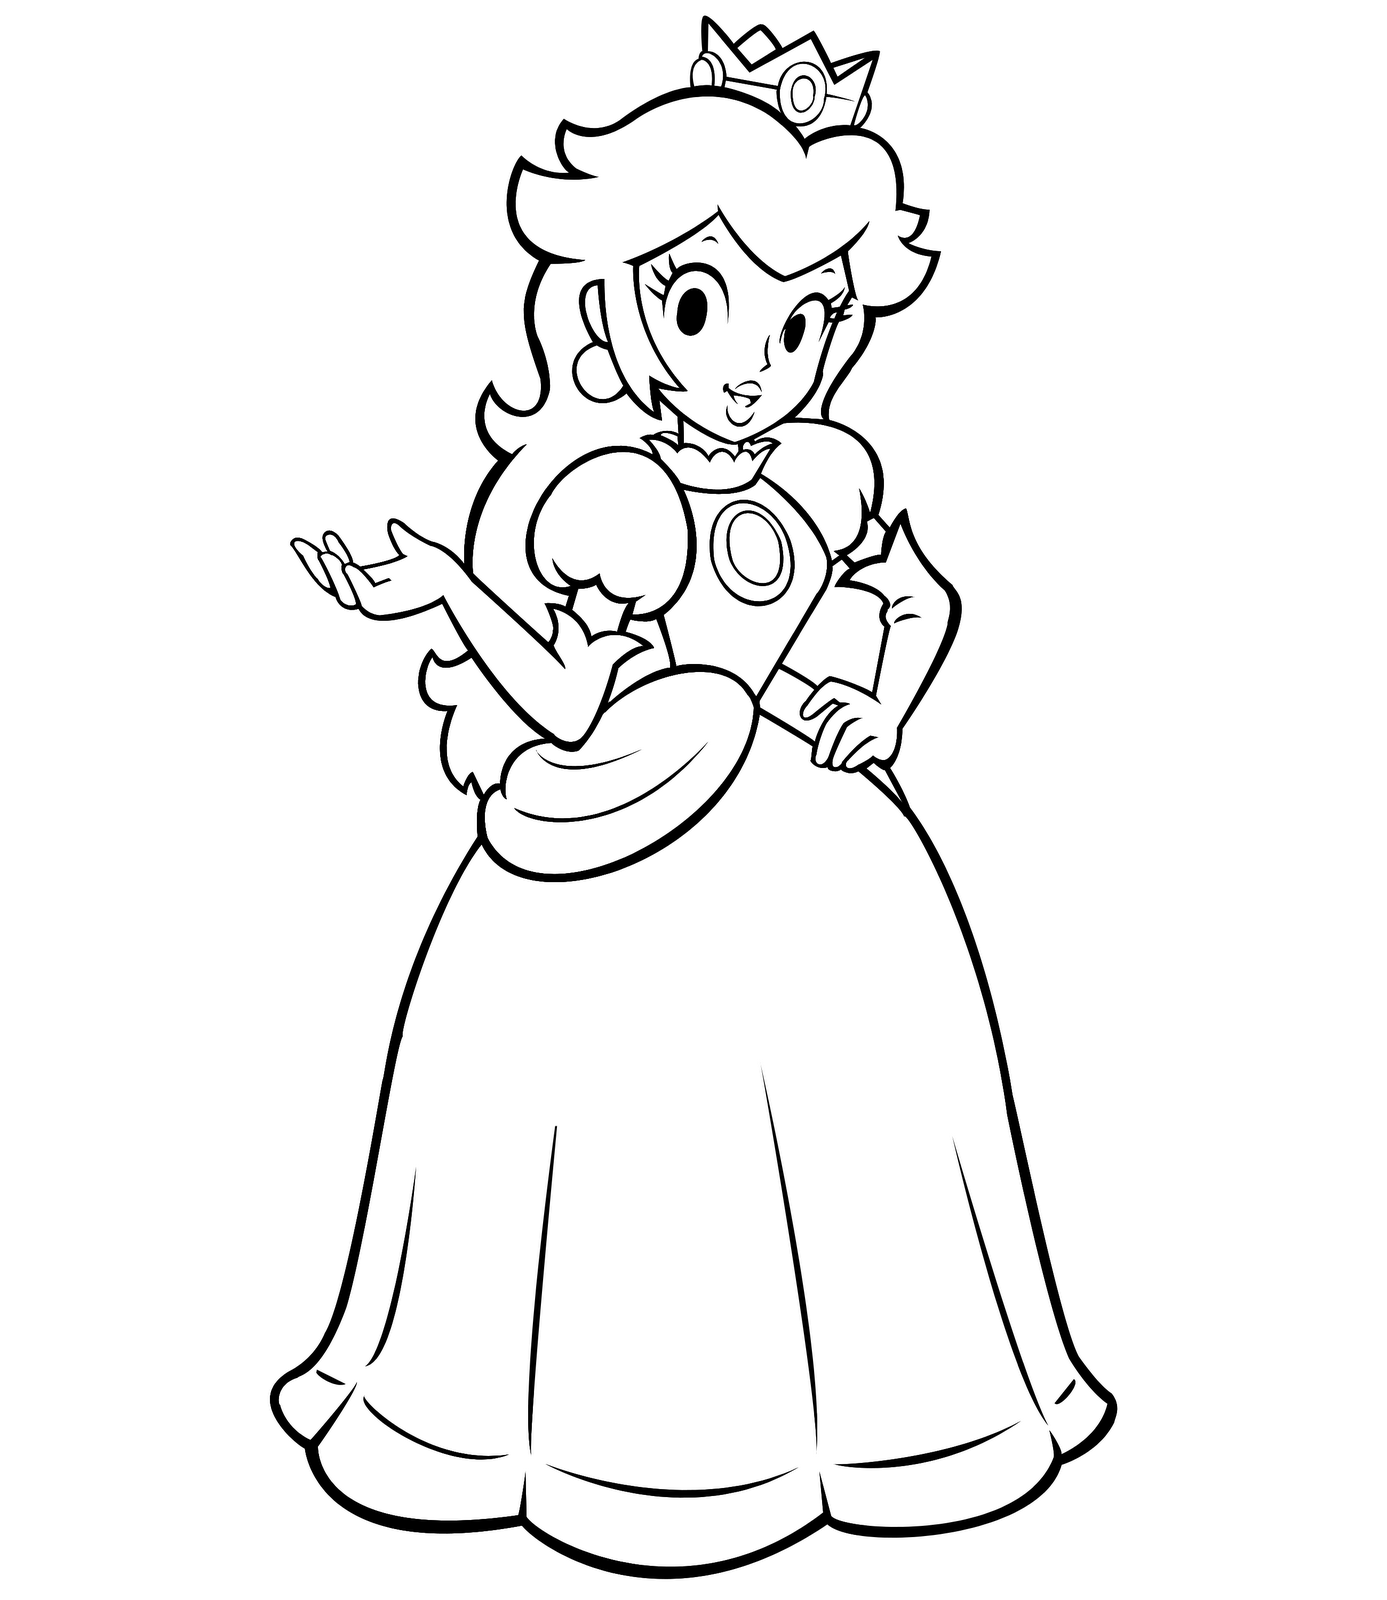 coloring pages princess peach coloring pages princess peach game peach princess pages coloring